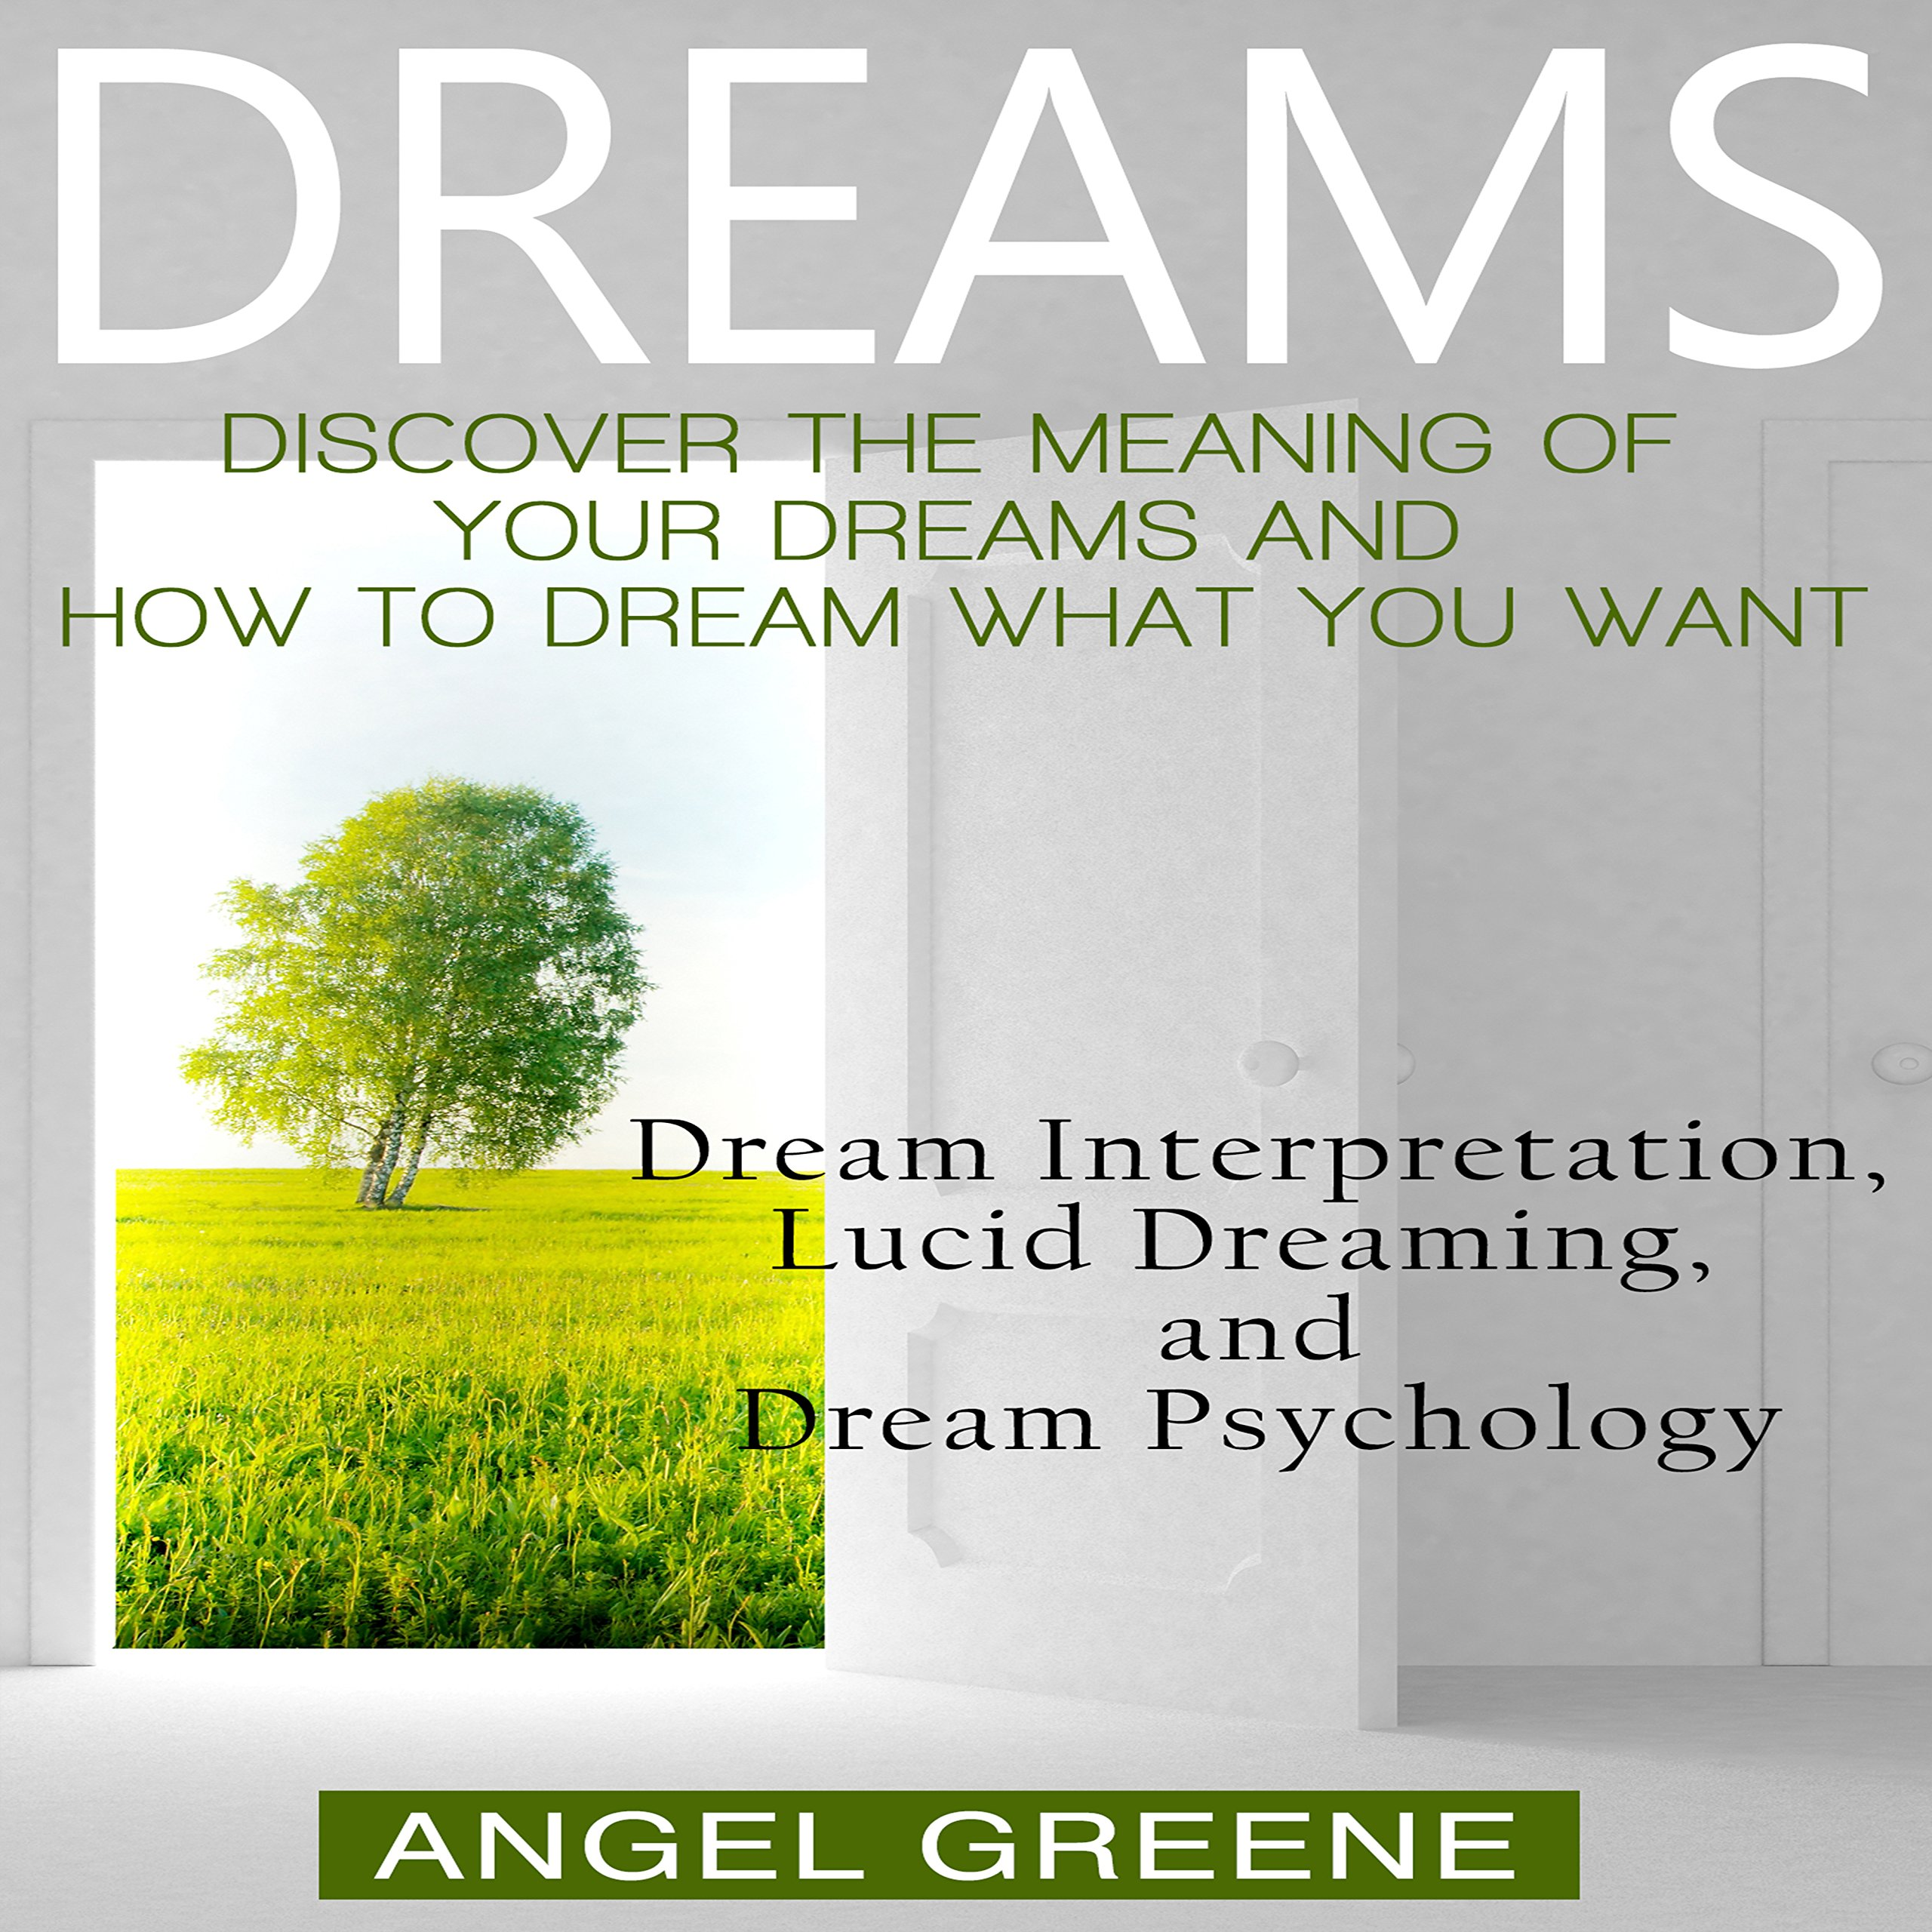 Dreams: Discover the Meaning of Your Dreams and How to Dream What You Want: Dream Interpretation, Lucid Dreaming, and Dream Psychology